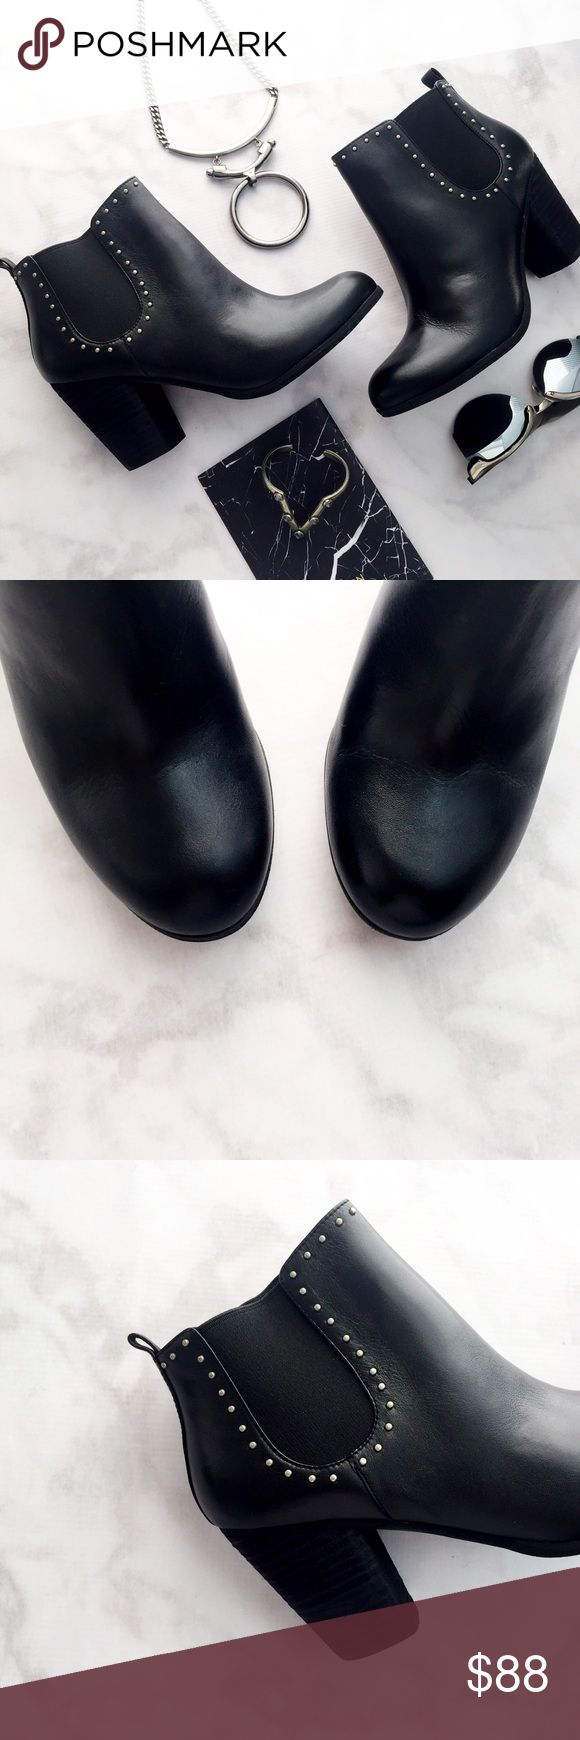 """Black Leather Studded Ankle Boots Details: * Size 7.5 * Pull on style * Leather with silver stud details * 3"""" heel * Brand new in box 11221601 bp Shoes Ankle Boots & Booties"""